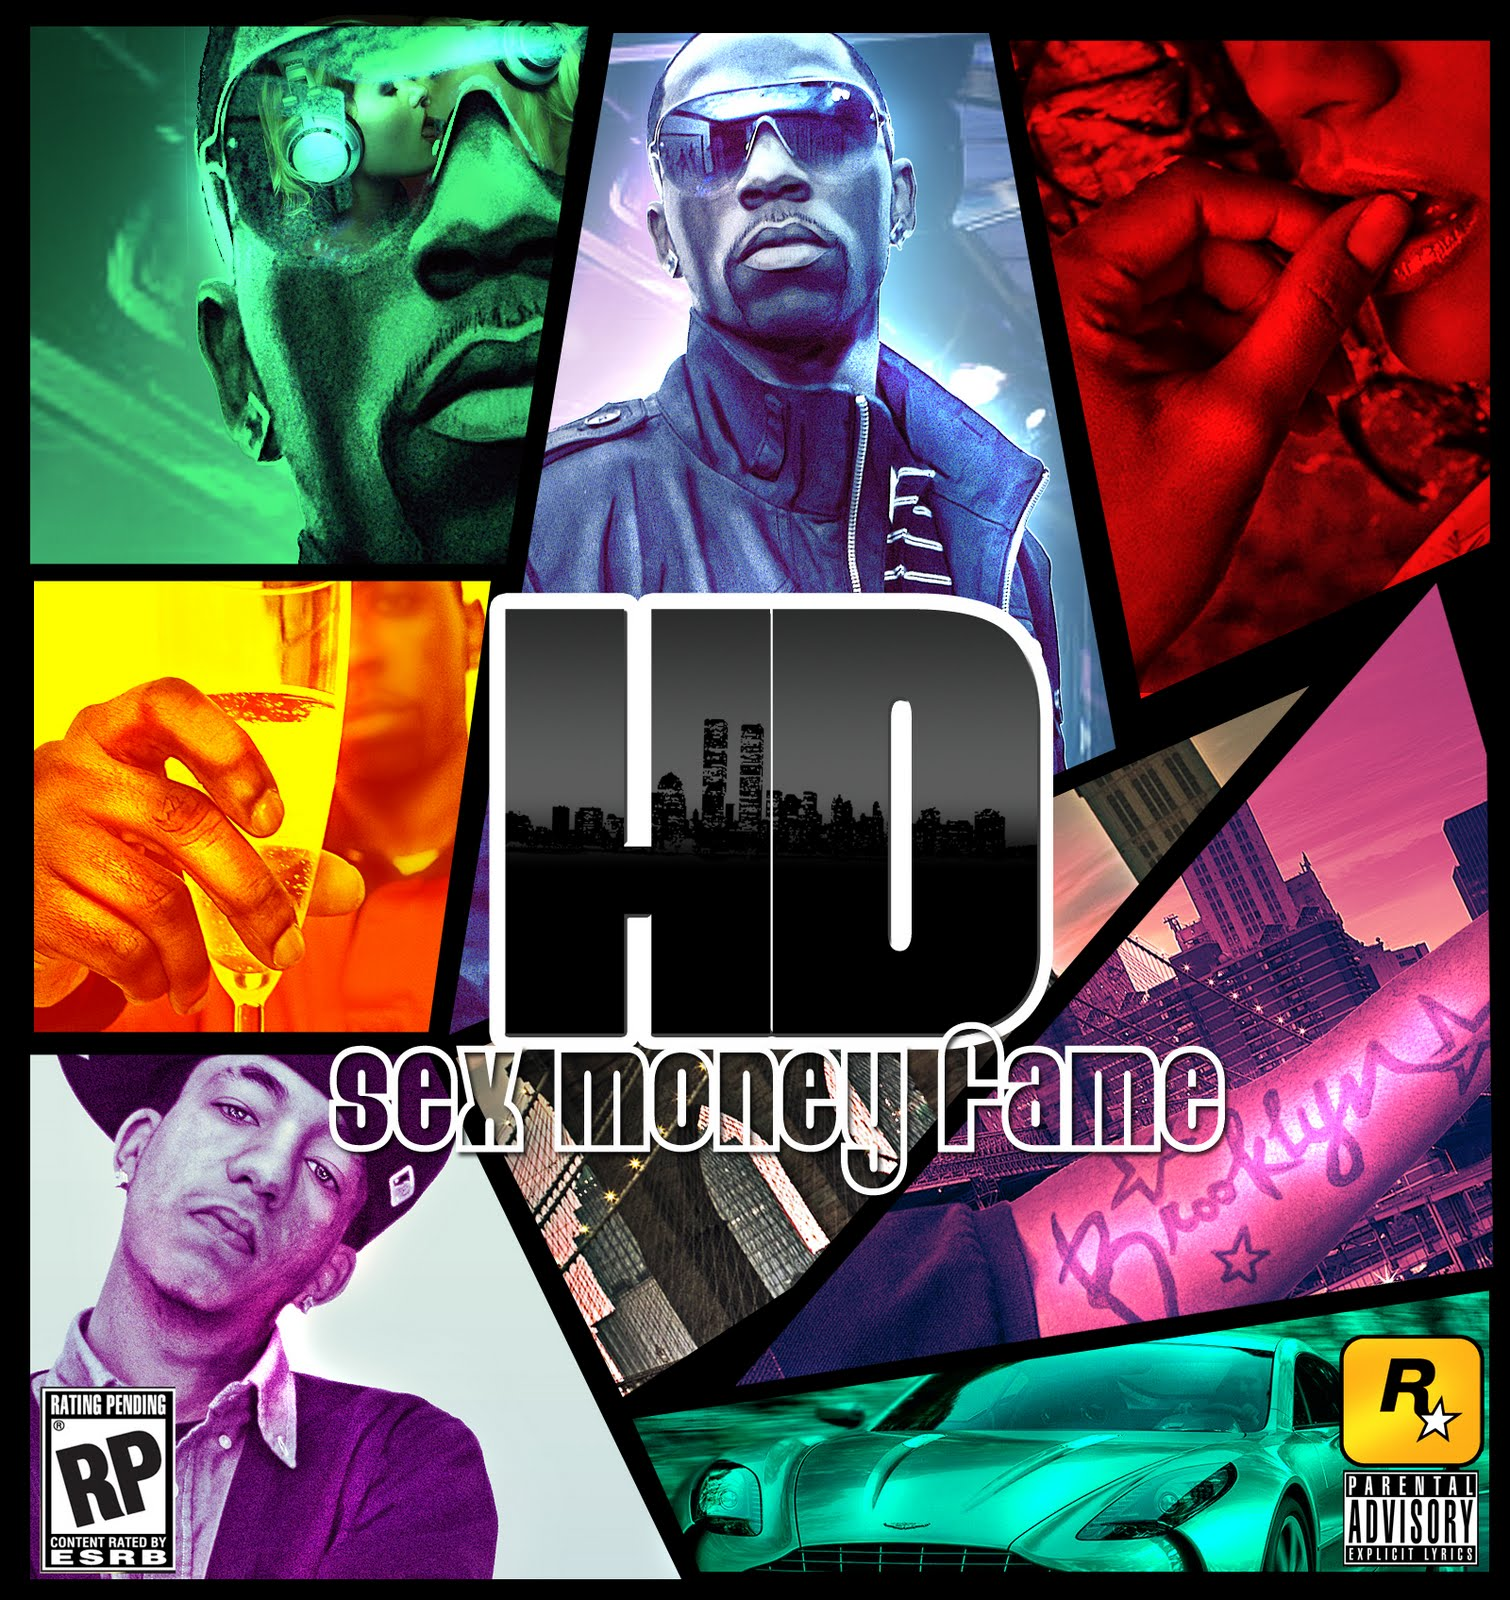 1st Realease Off Sex Money